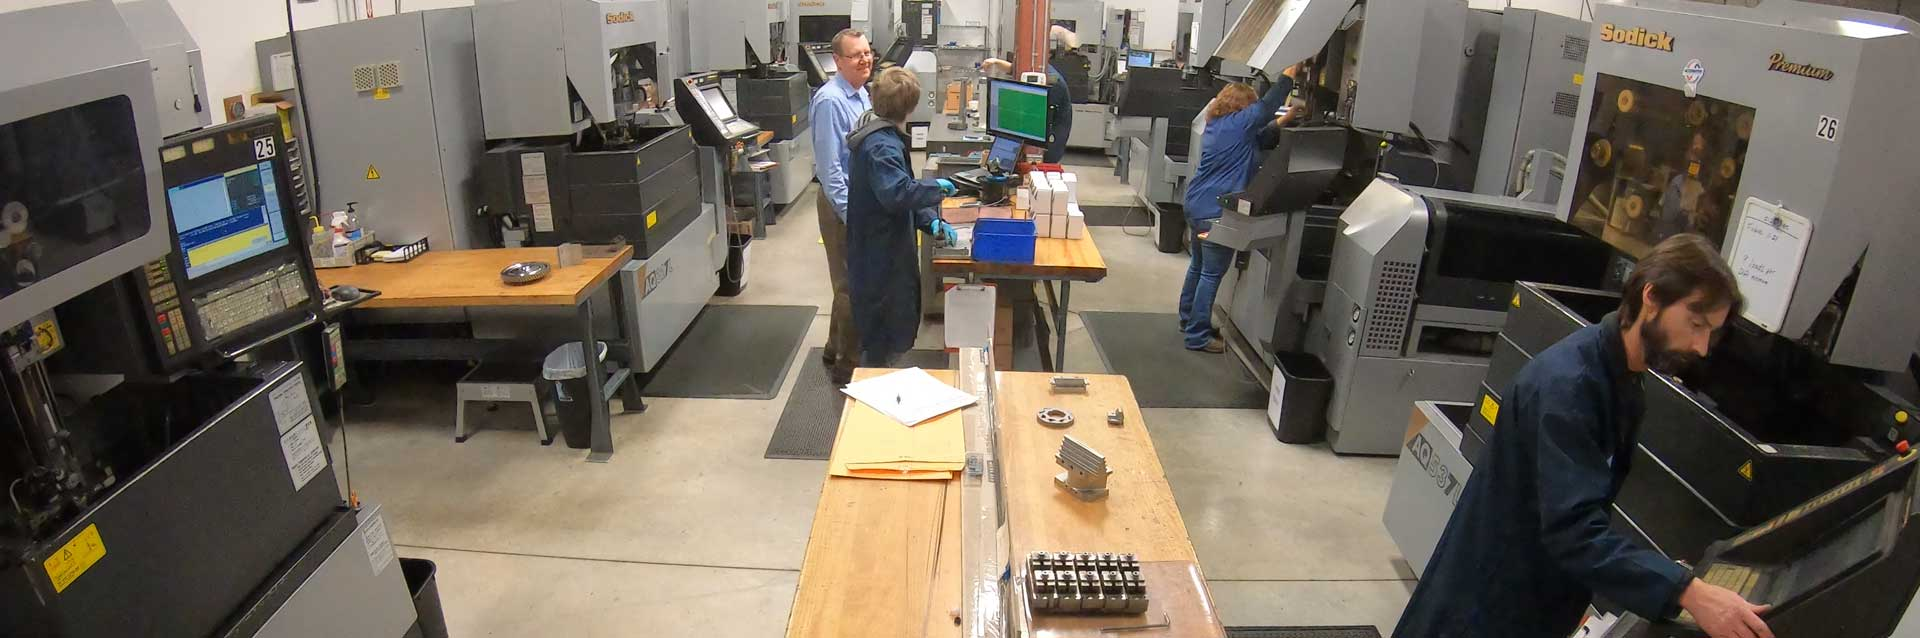 interior view of electrical discharge machining facilities